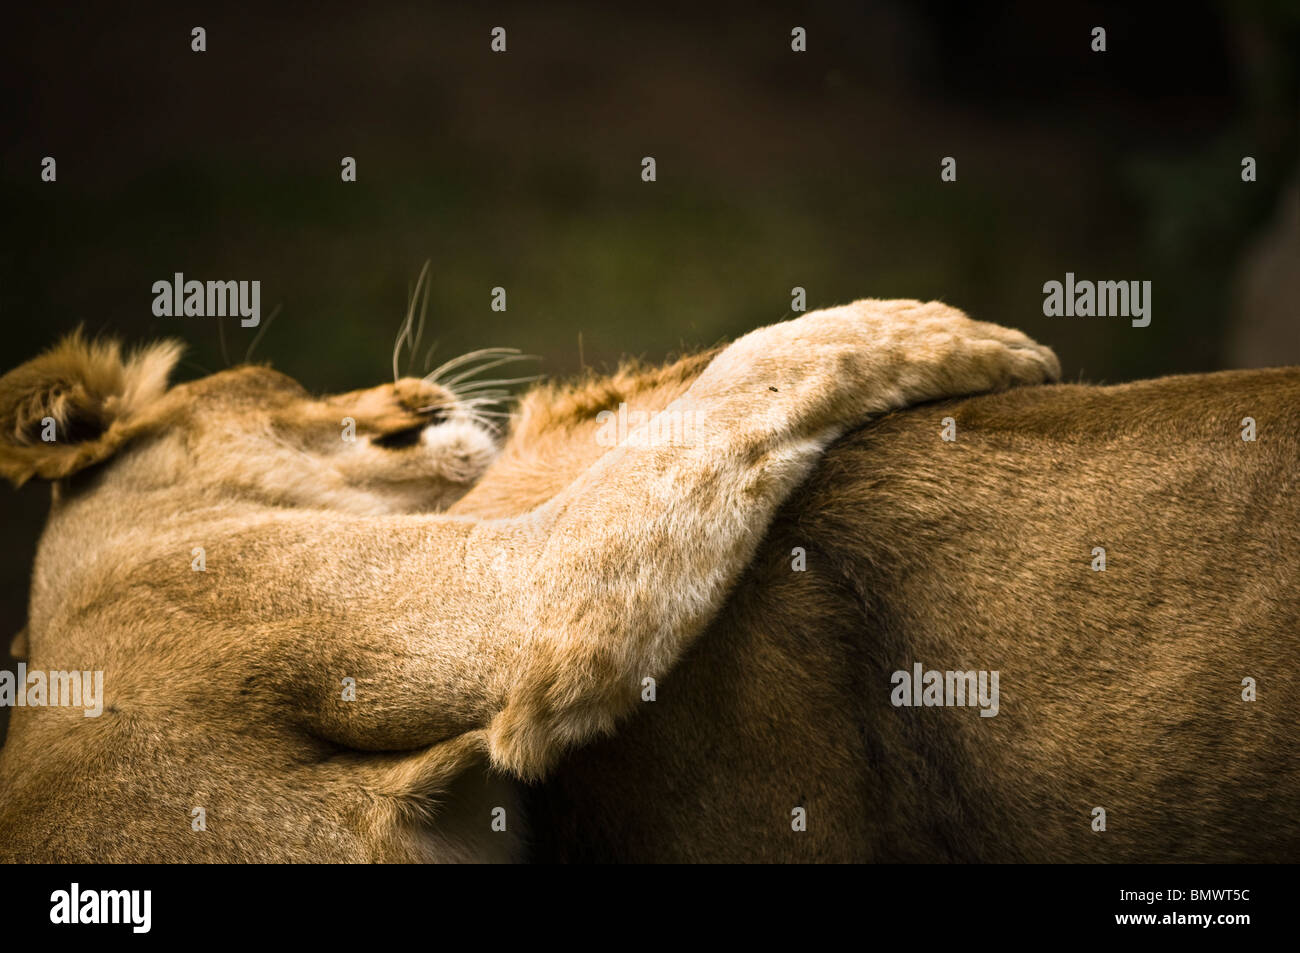 Asiatic Lions (Panthera leo persica) - two Asiatic lions, male and female, playing - July, Planckendael Zoo, Belgium, - Stock Image